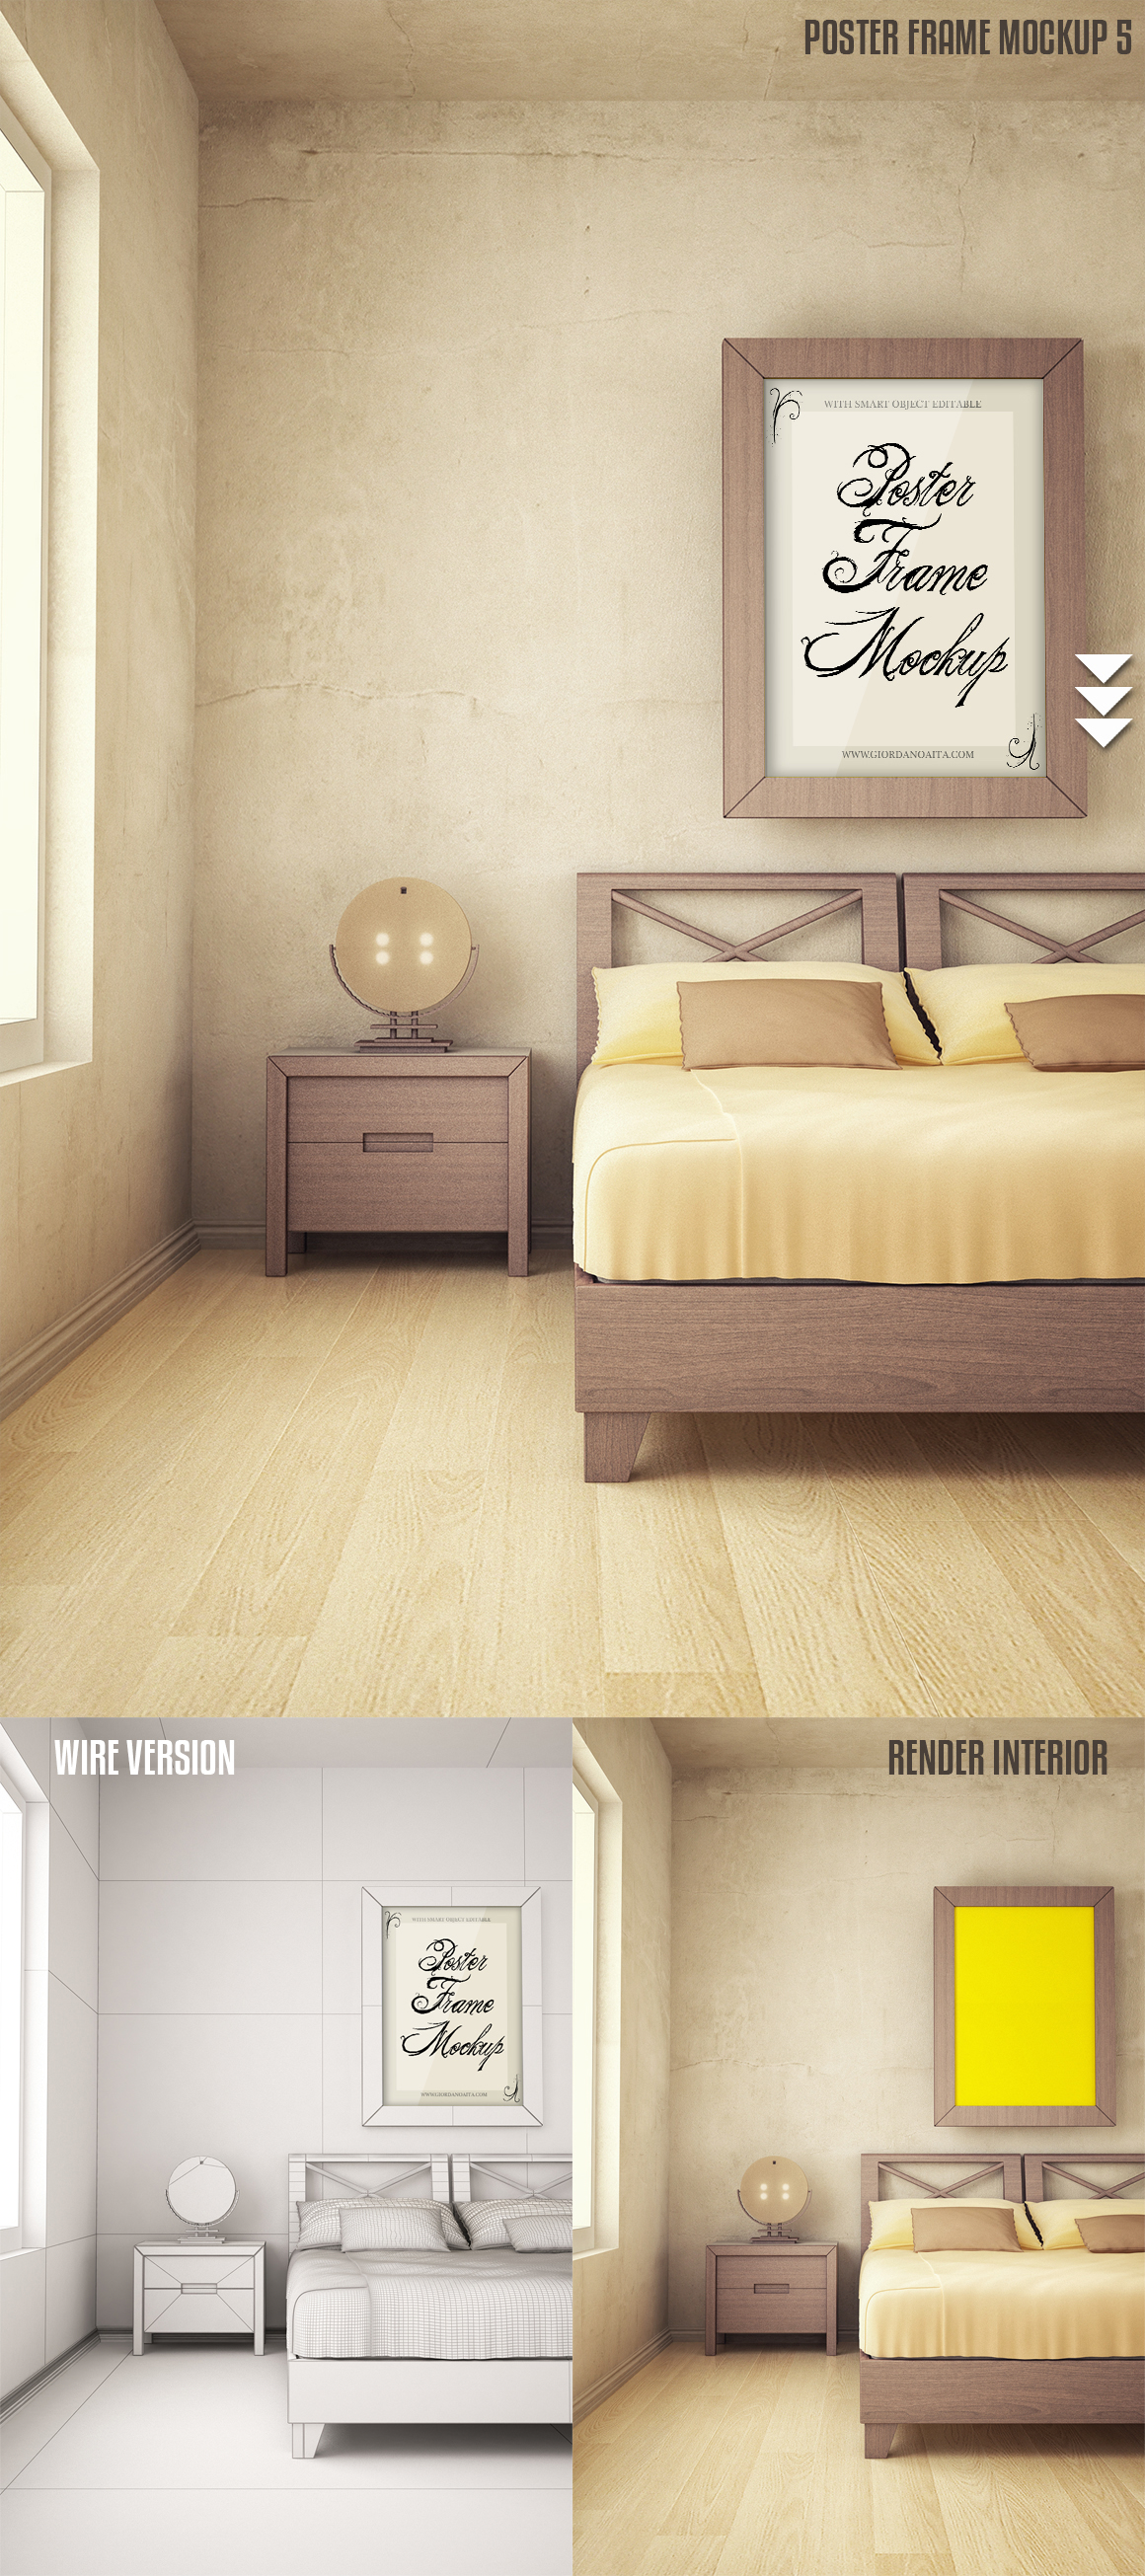 Interiors Mock-up Vol. 3 example image 4